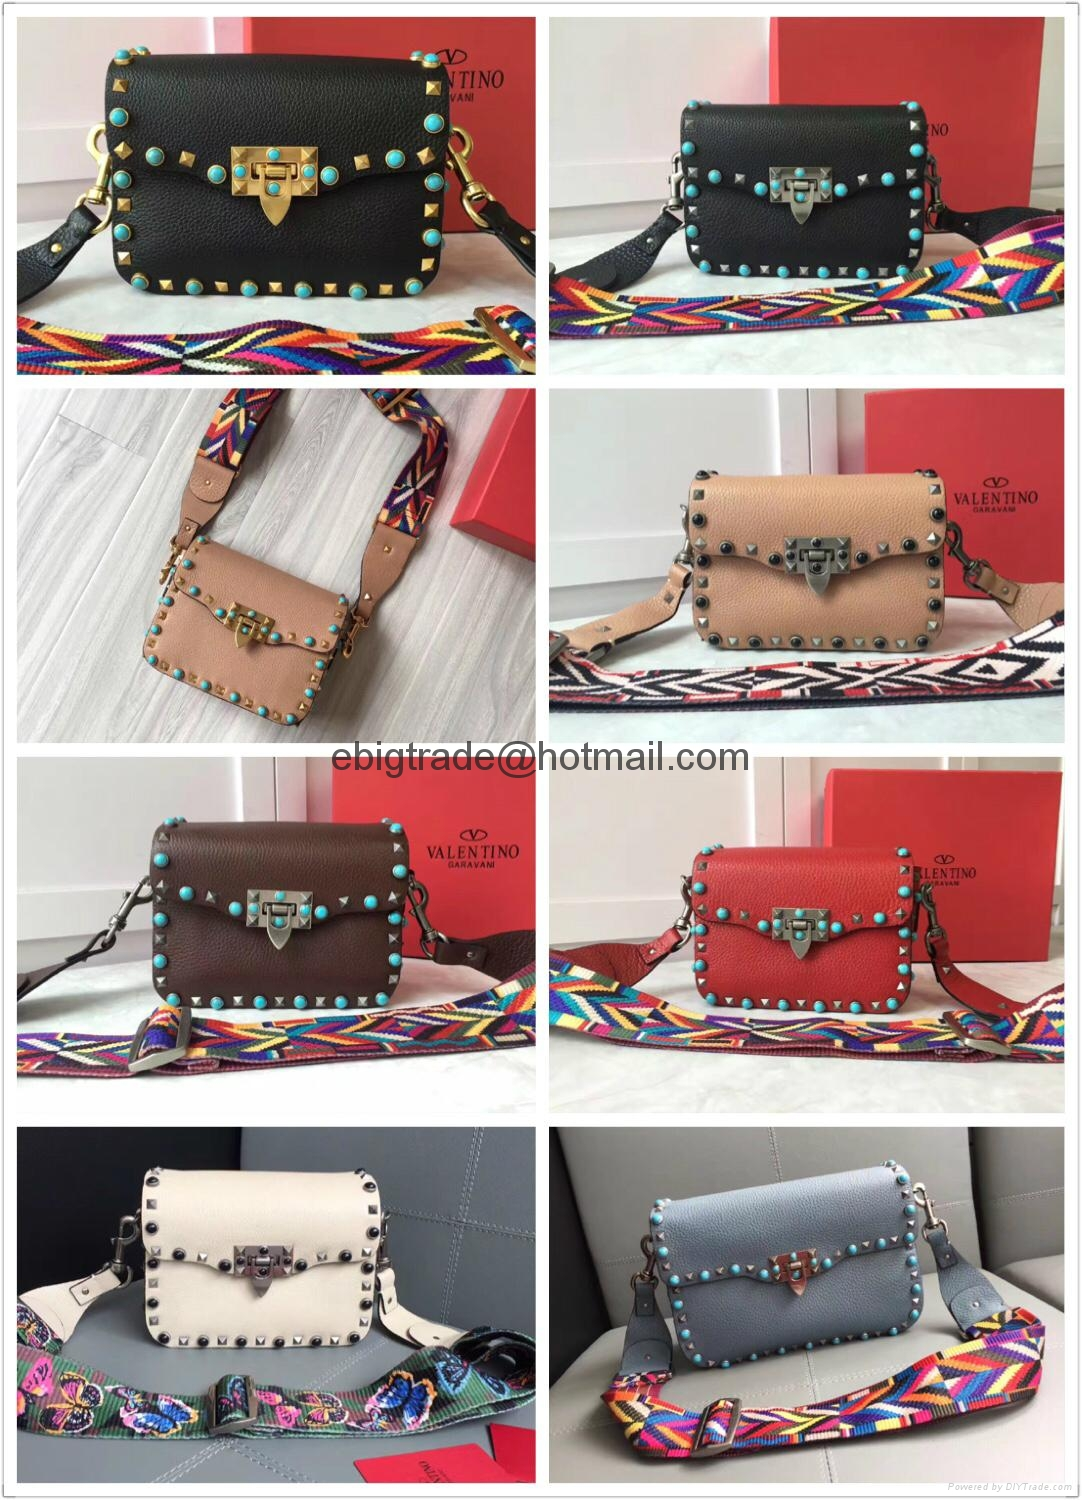 Valentino handbags replica